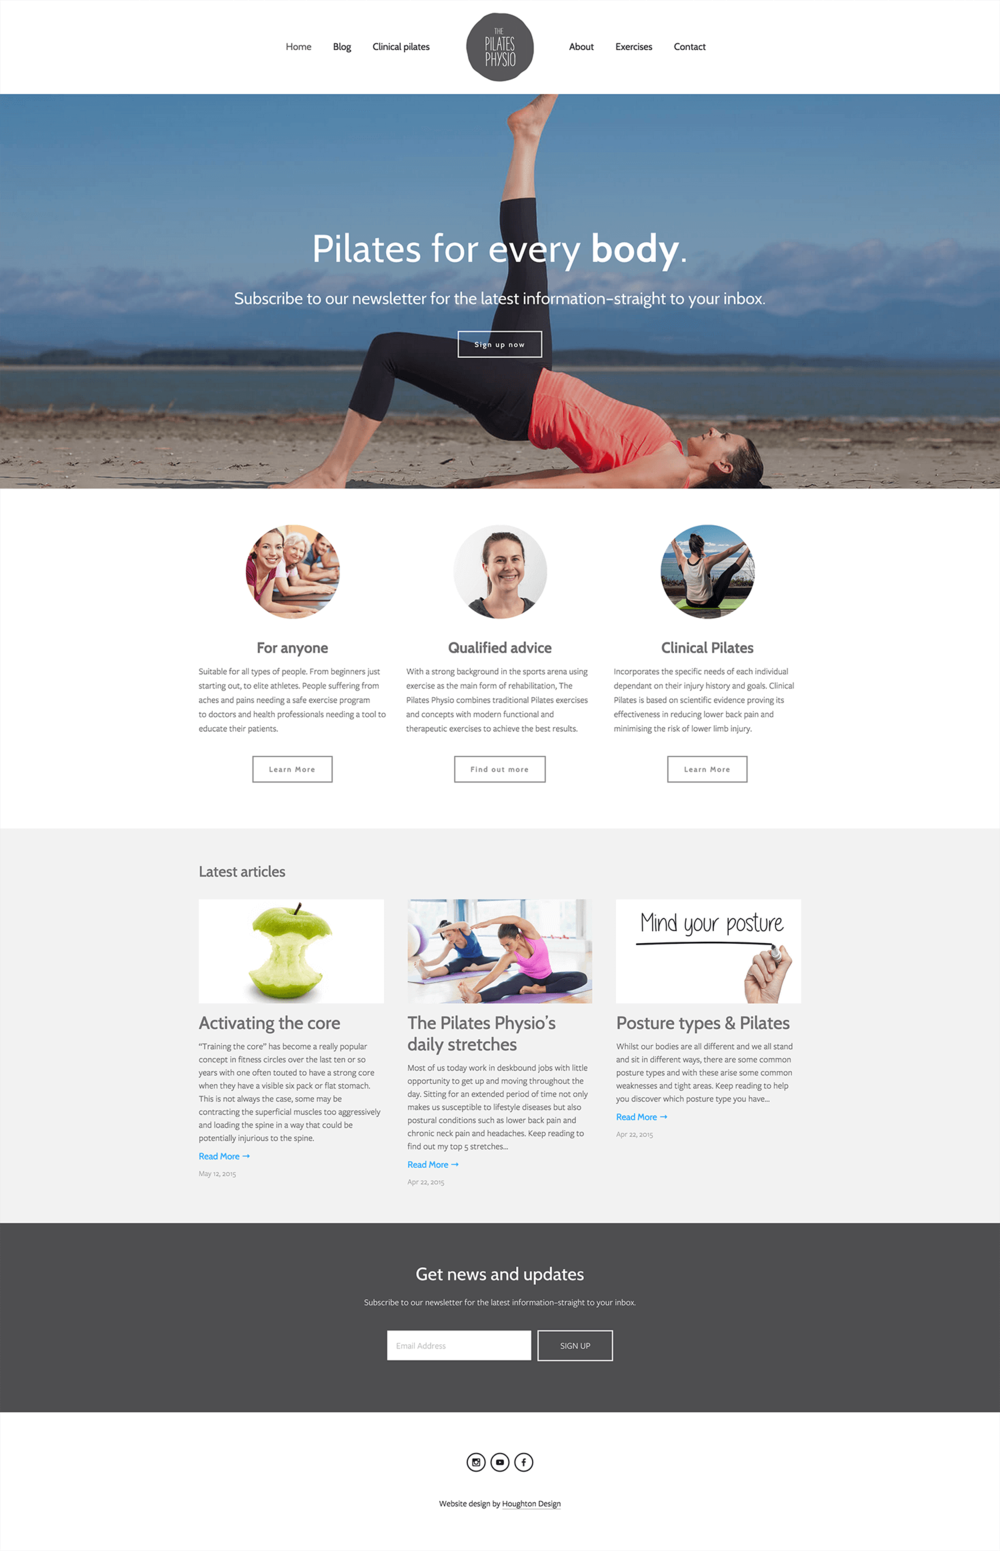 Squarespace website for The Pilates Physio - www.thepilatesphysio.com